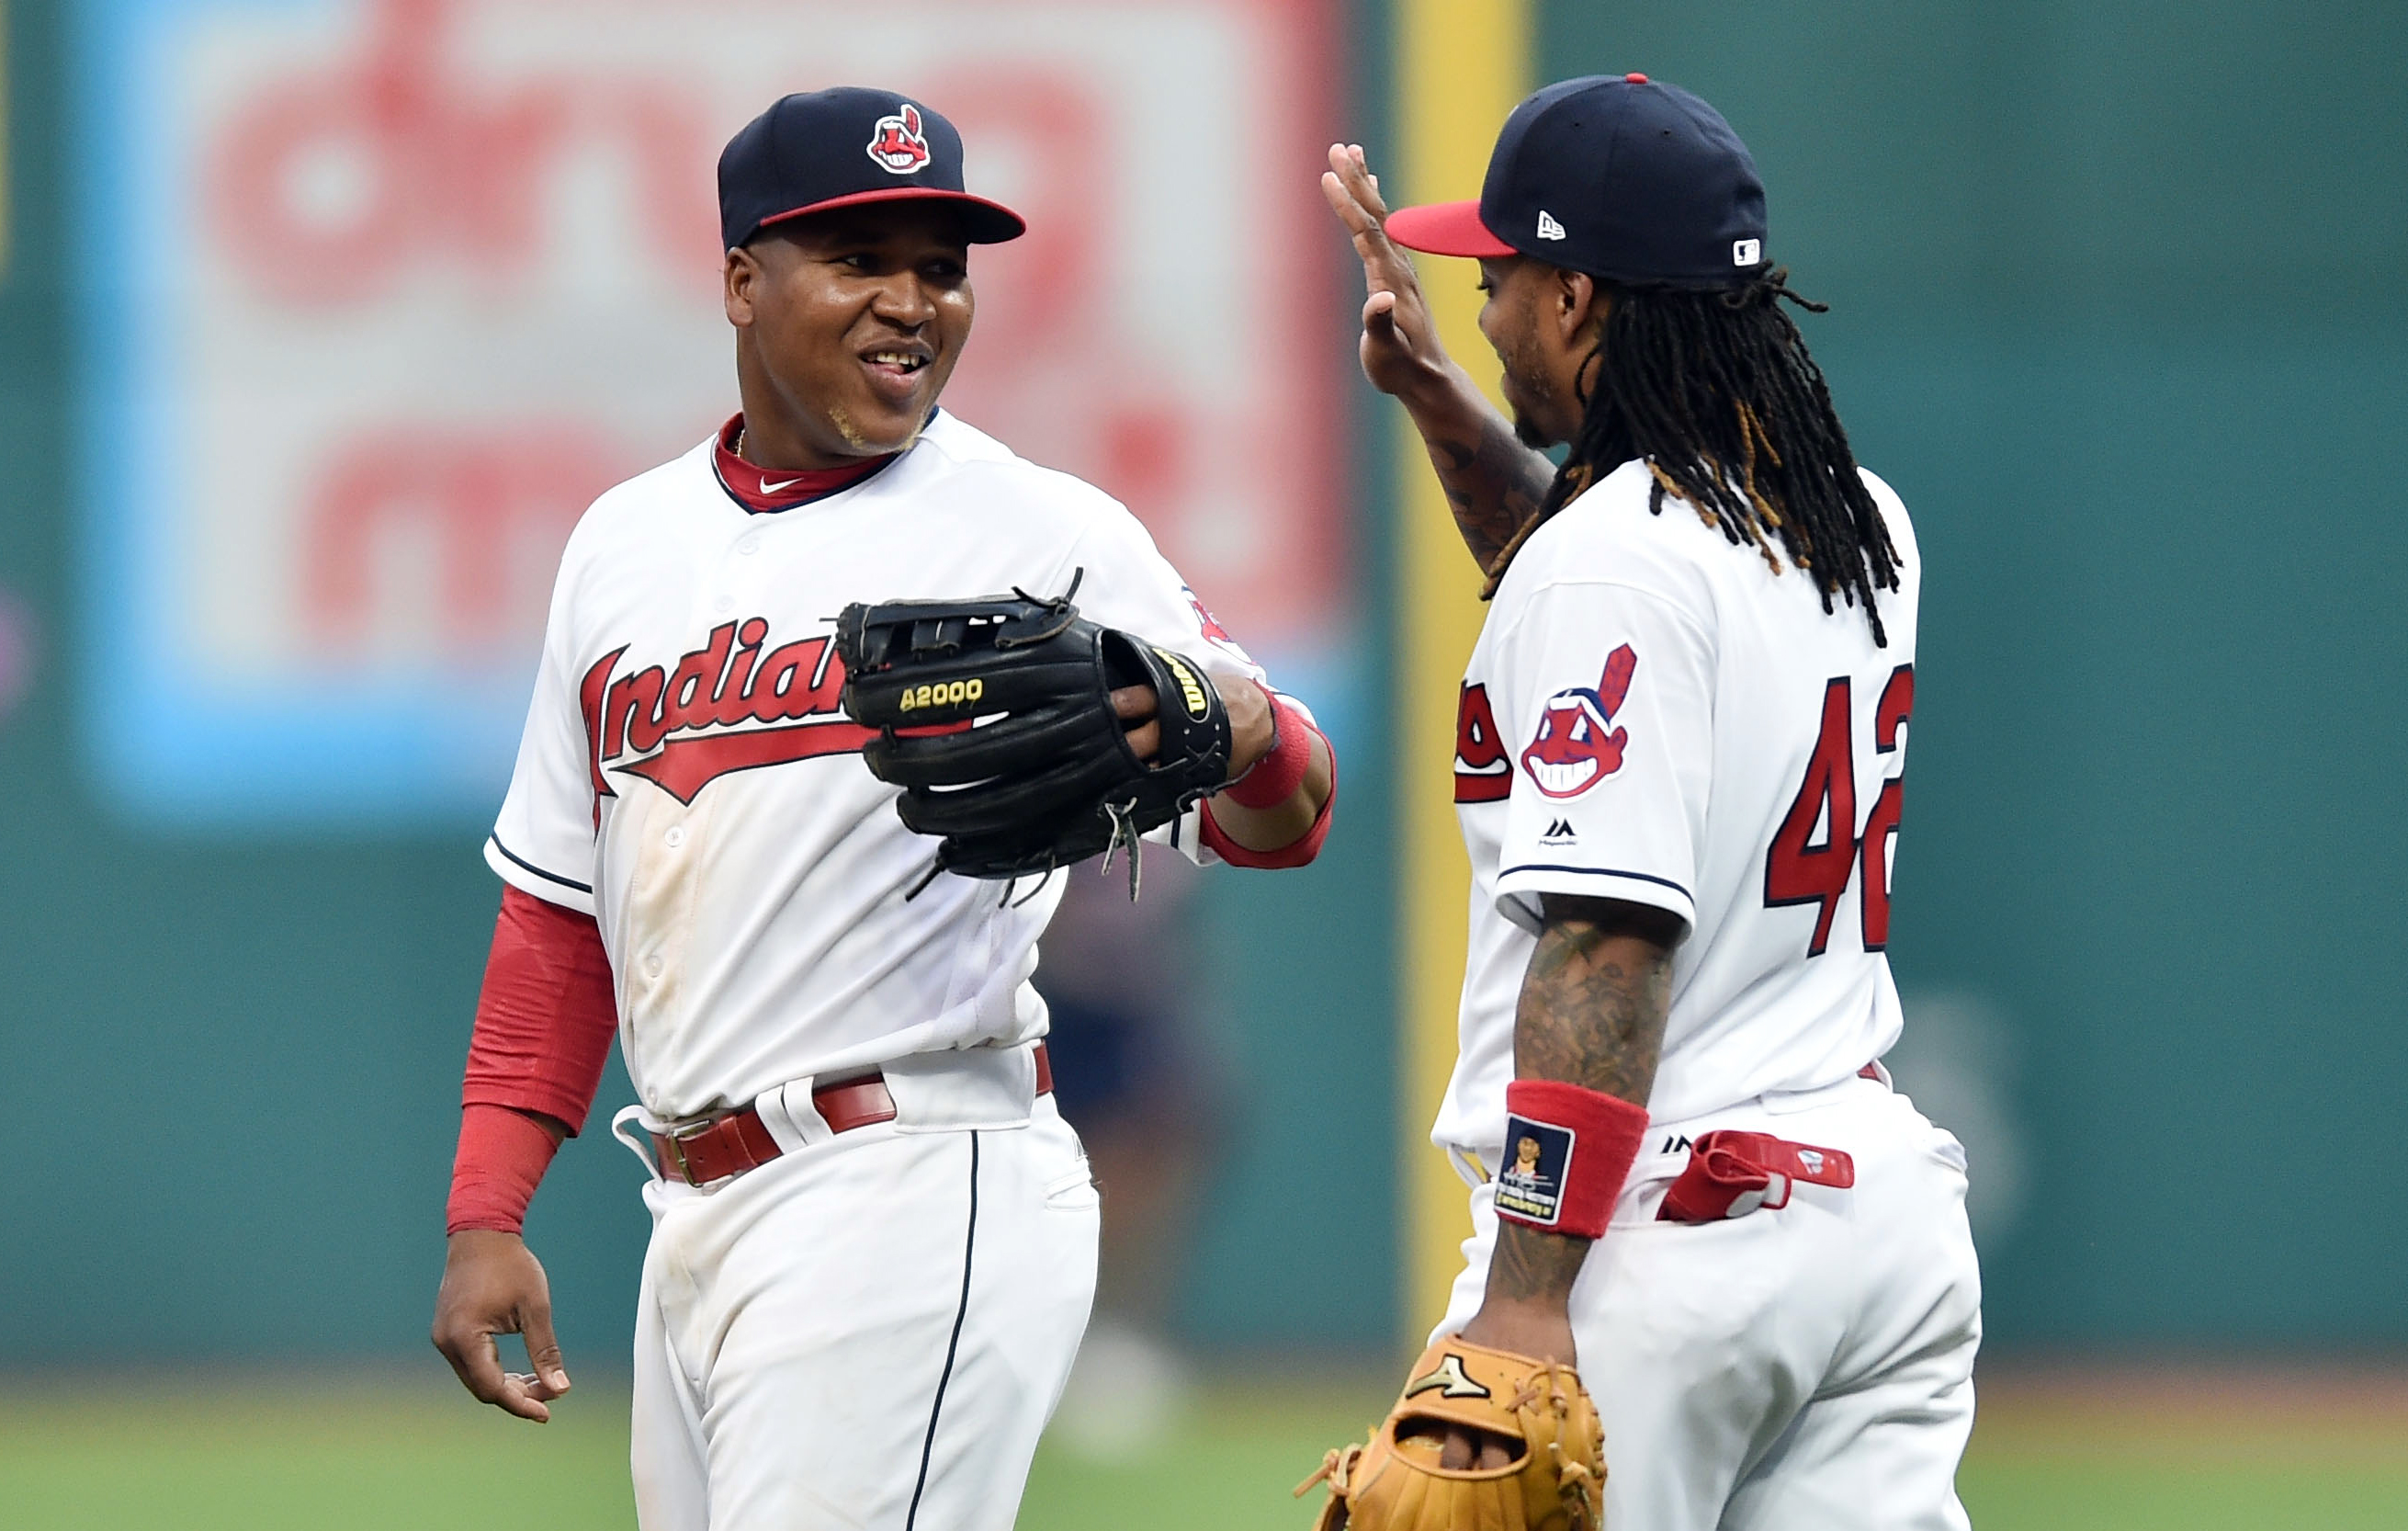 Indians-Twins rained out in advance; makeup date is June 17